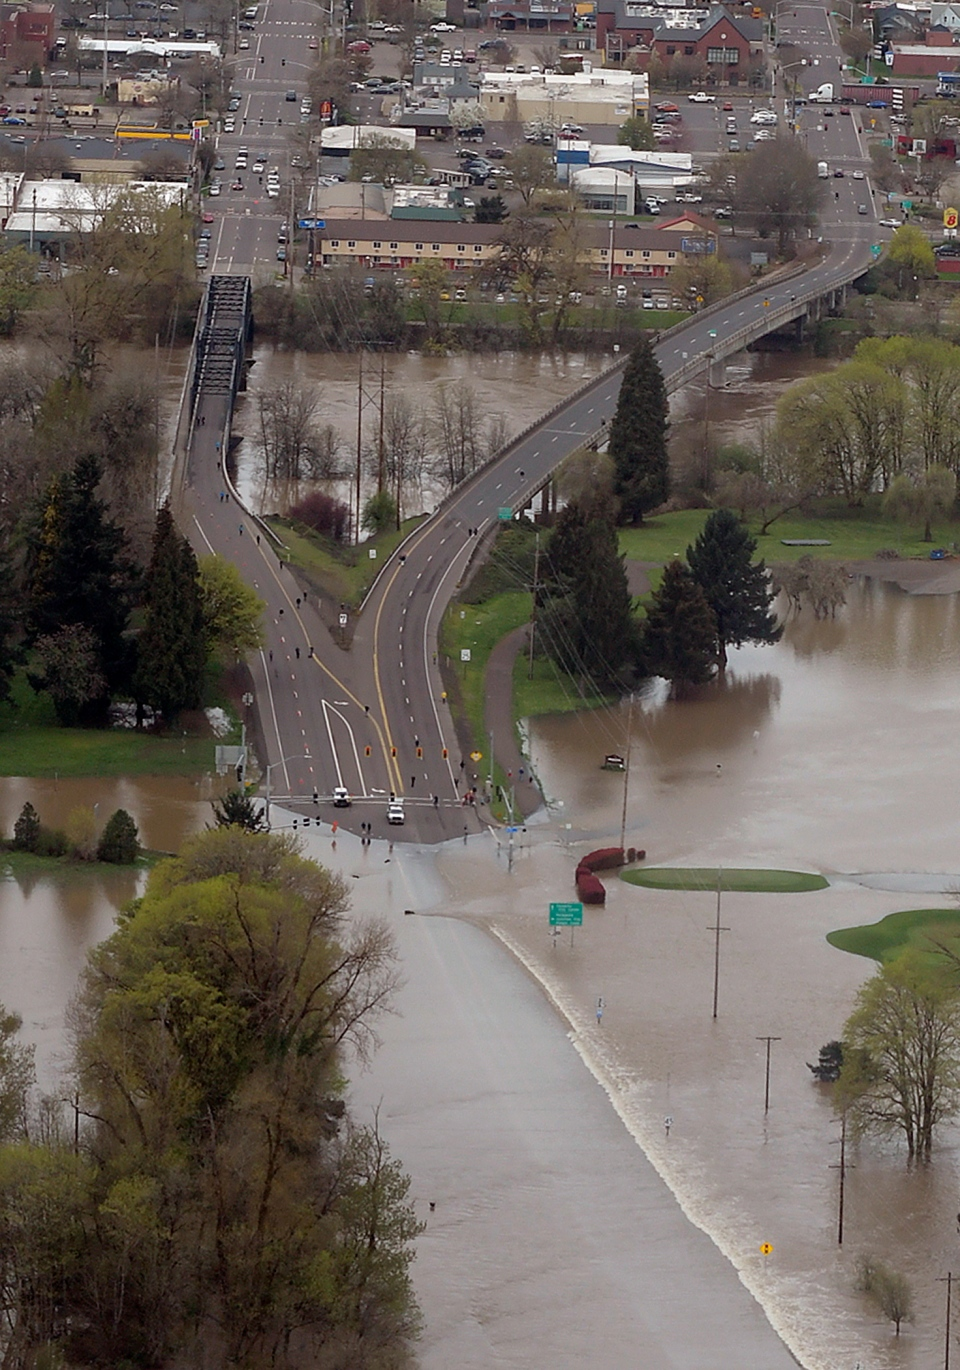 This aerial photo shows the Willamette River shutting down Highway 34 in Corvallis, Ore., Wednesday, April 10, 2019. The flooding has forced evacuations for the second day throughout parts of Oregon. (Mark Ylen/Albany Democrat-Herald via AP)